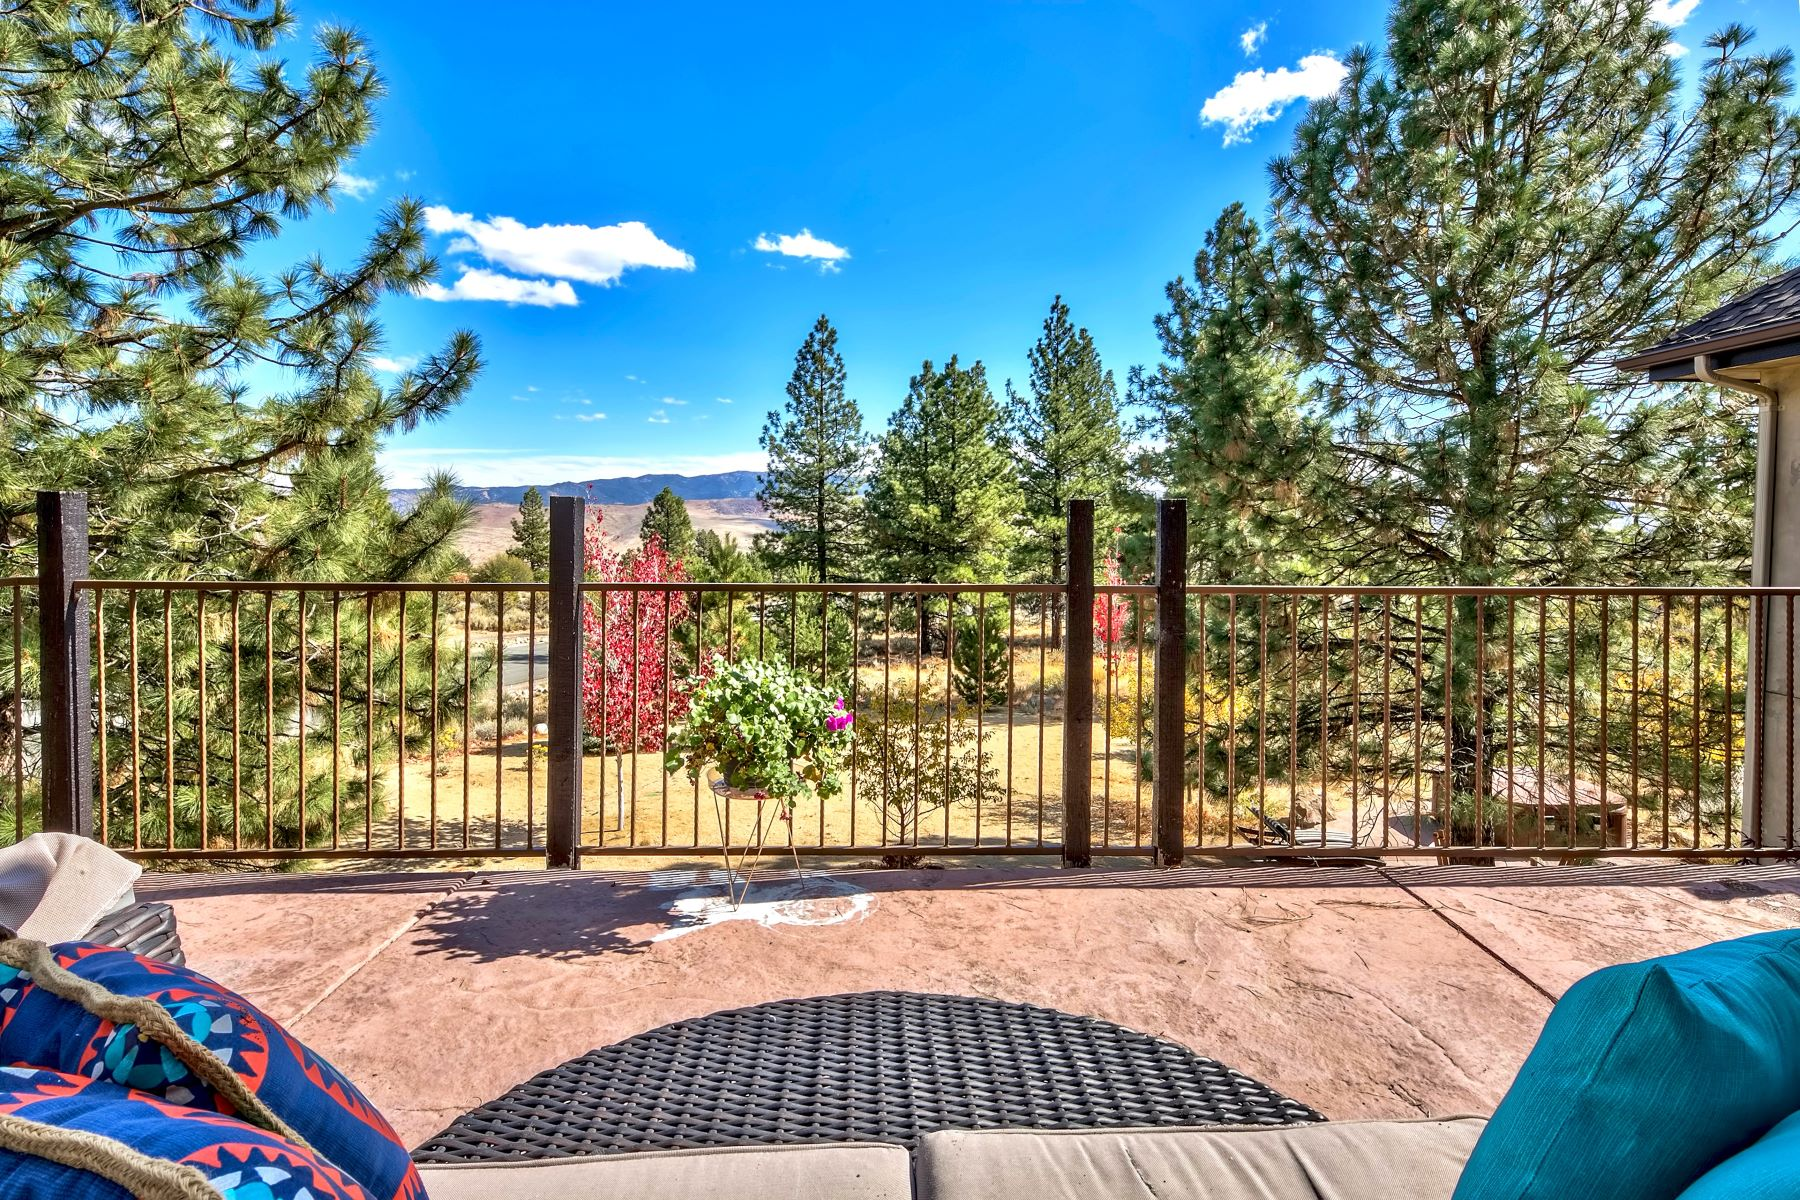 Additional photo for property listing at Beauty, Elegance, and Nature 395 Mount Mahogany Ct. Reno, Nevada 89511 United States